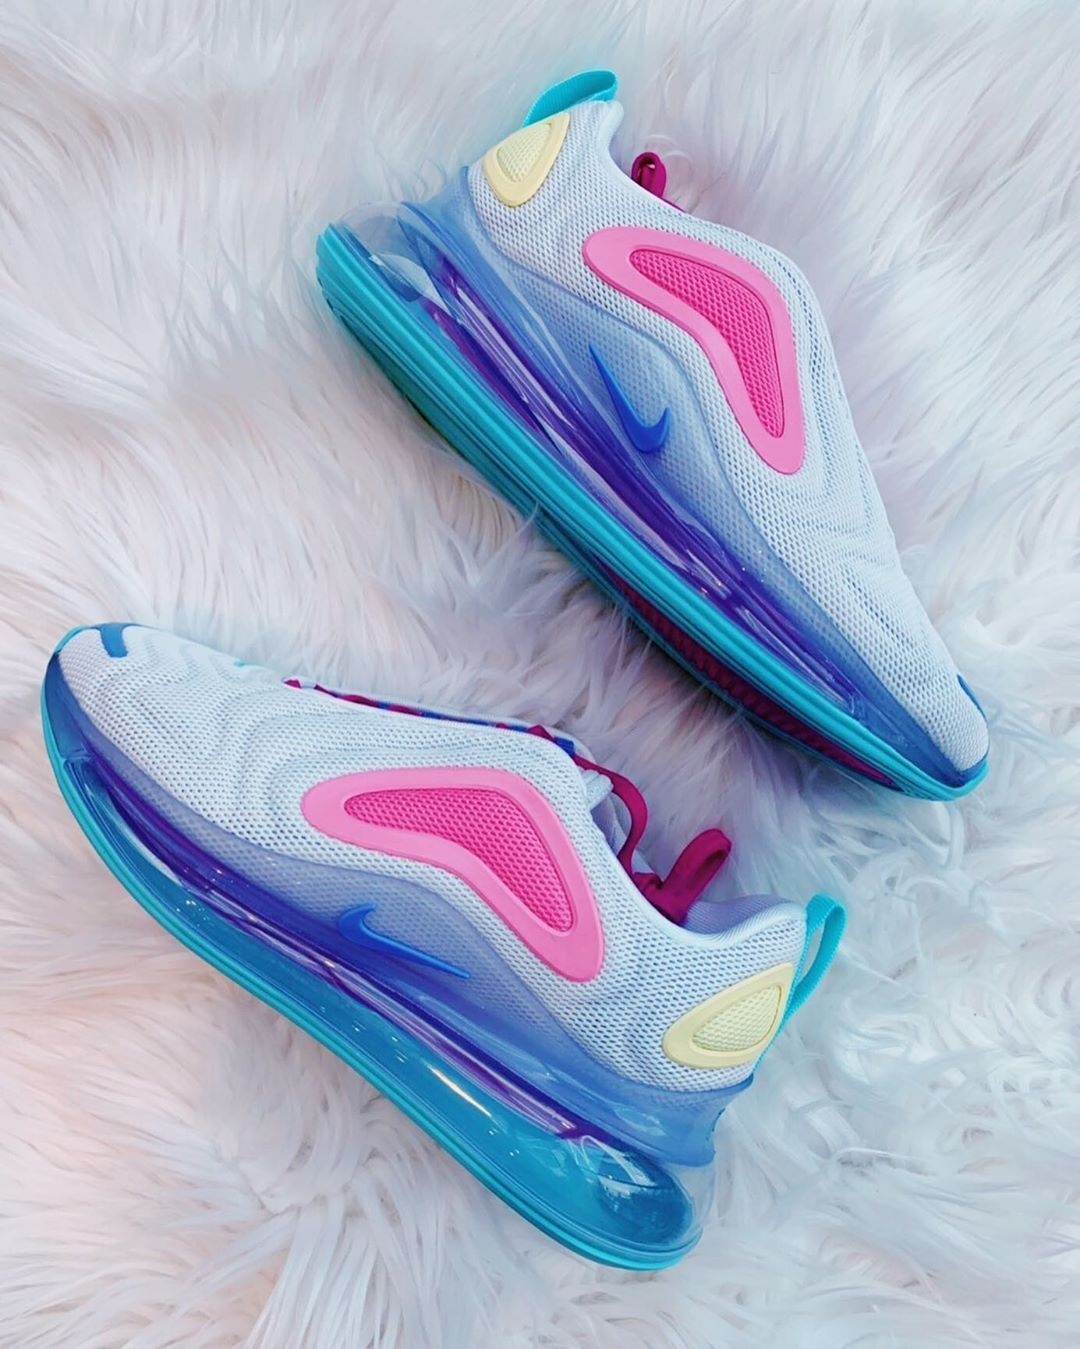 The Air Max 720 Featuring Pop Colorways Like Cotton Candy Is For